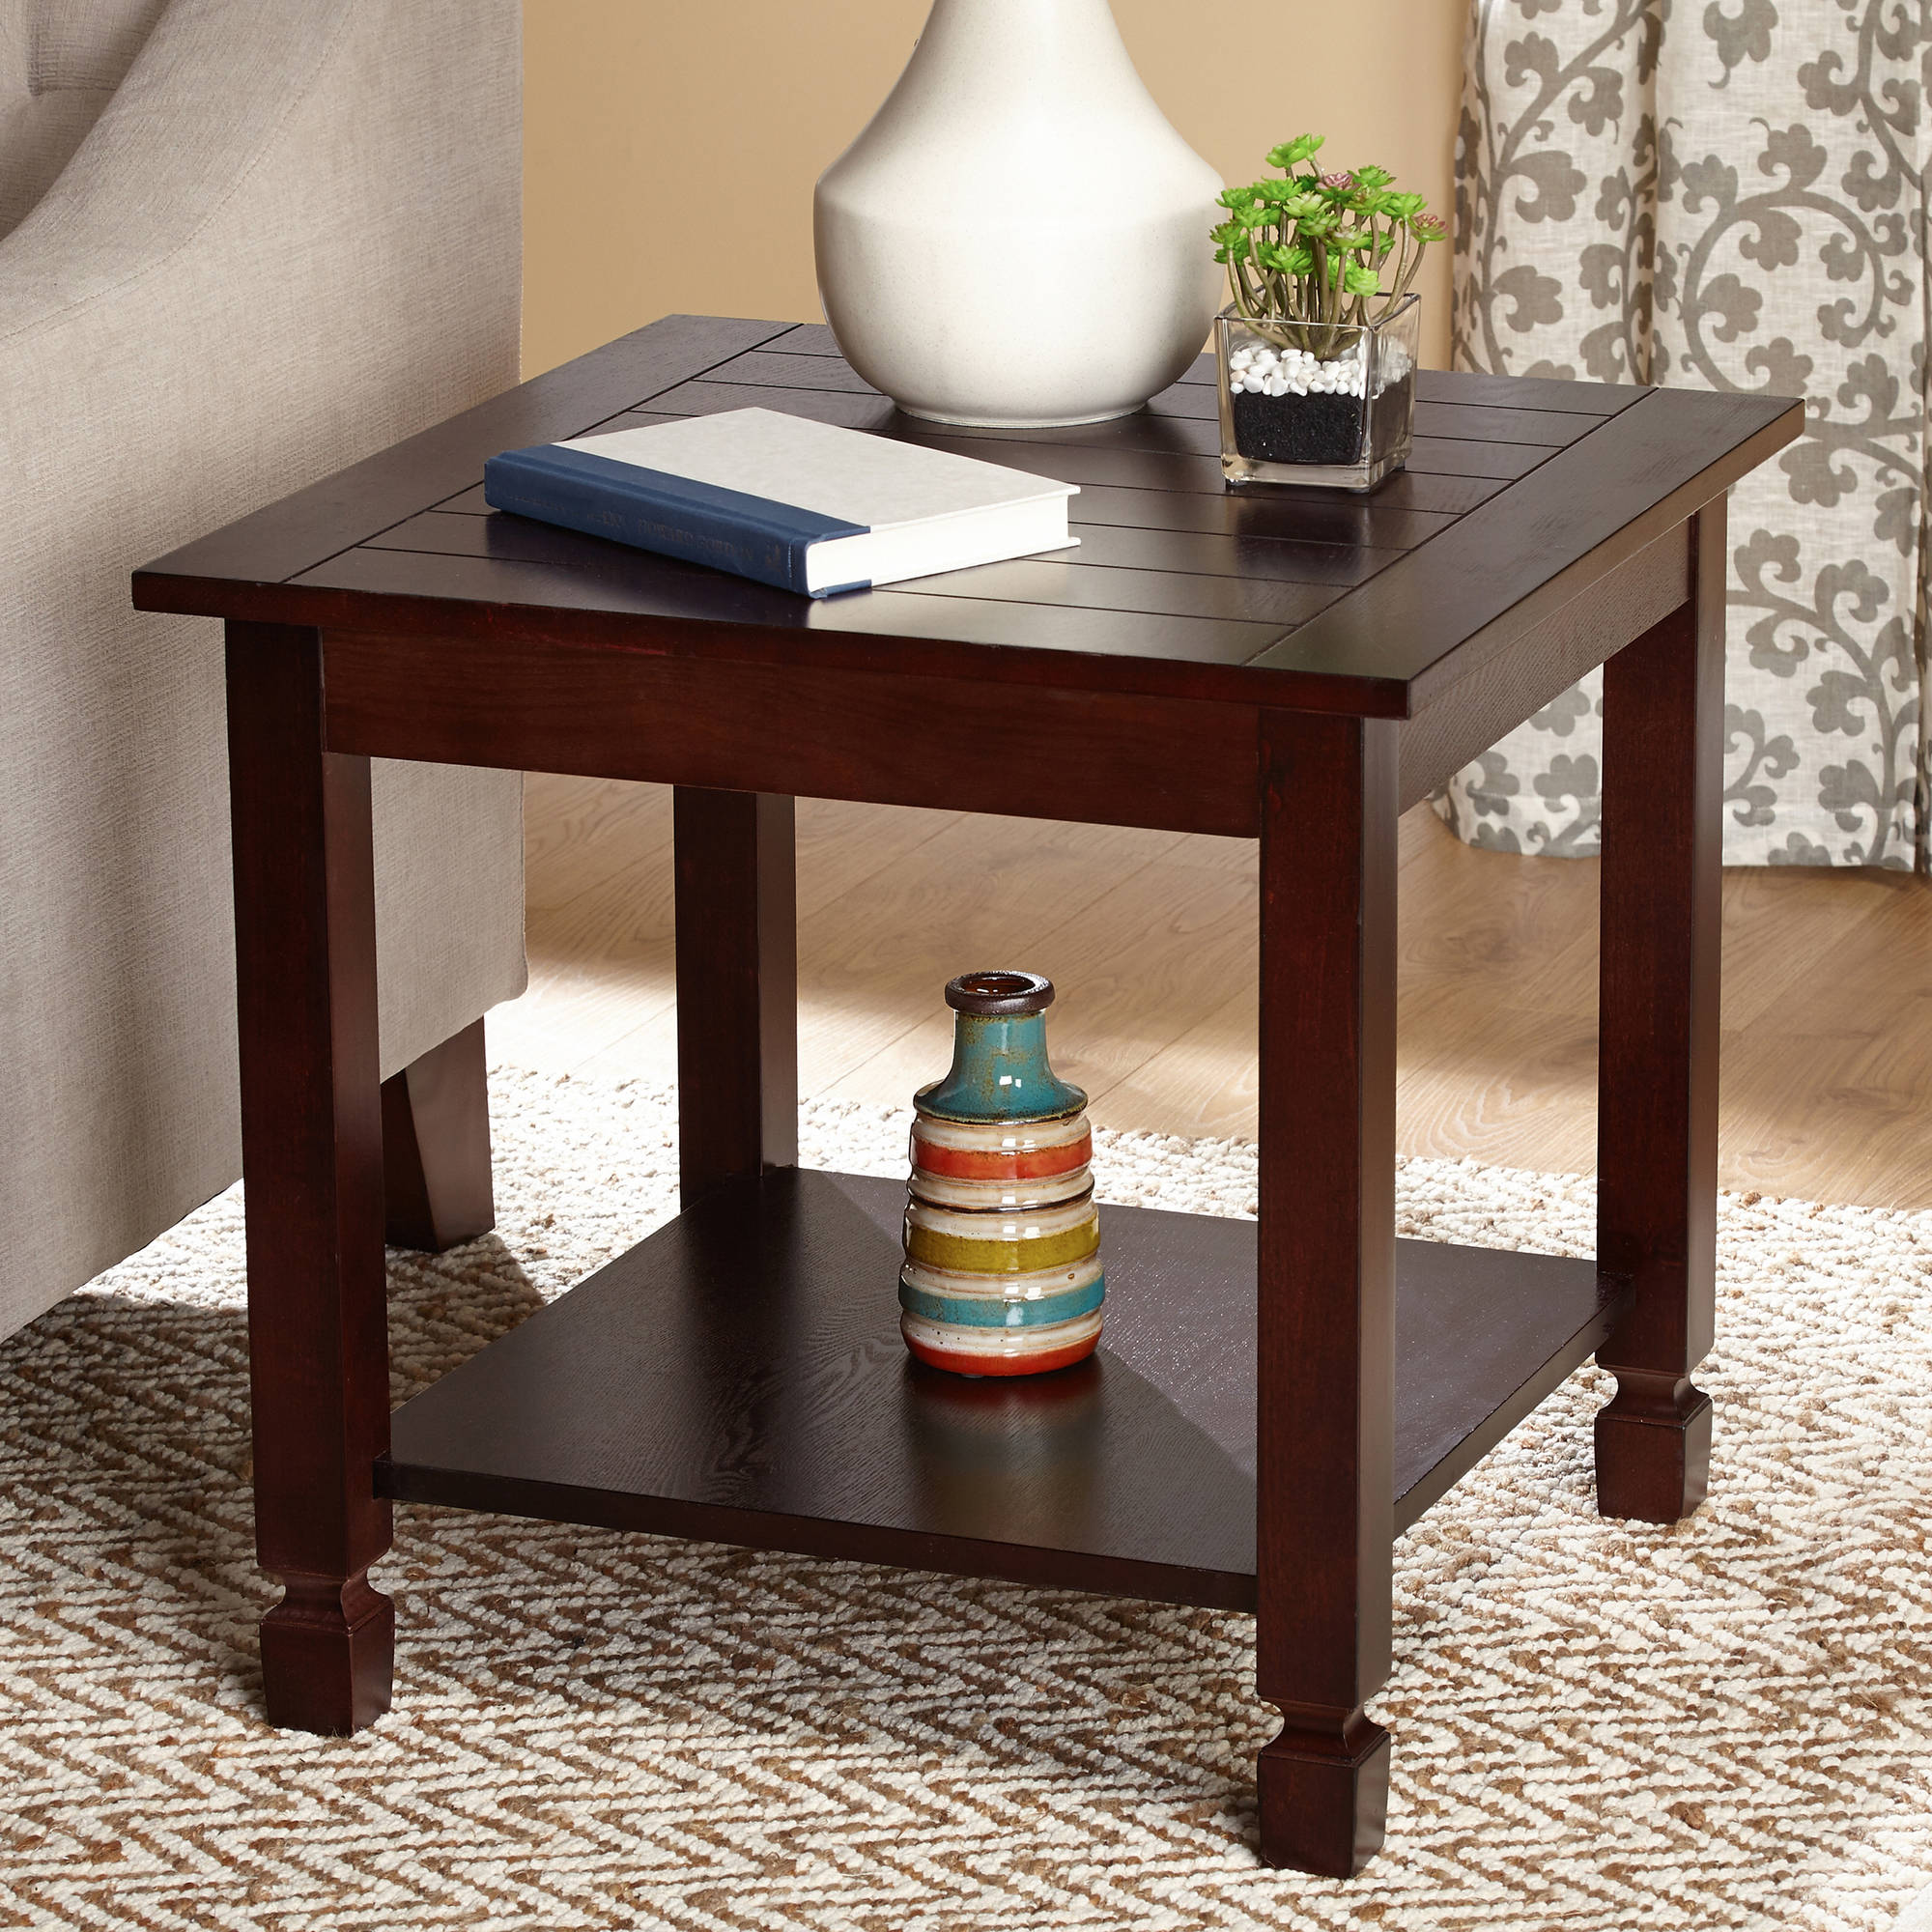 zenith end table espresso tall industrial desk outdoor patio cocktail tables rugs that match black leather couches coffee with tree trunk base barnwood sofa unfinished furniture